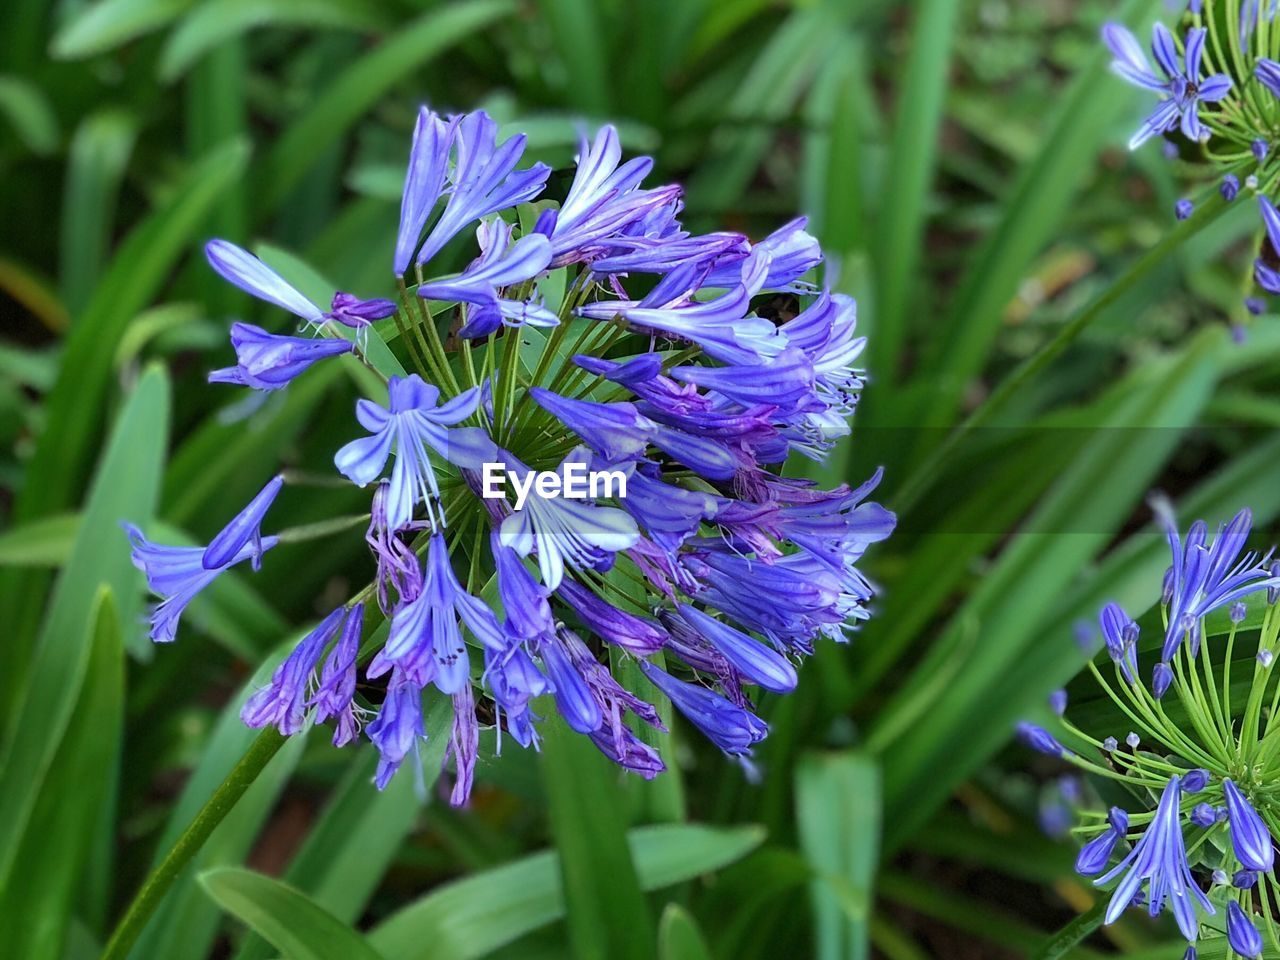 flower, purple, beauty in nature, nature, growth, fragility, petal, blue, plant, freshness, outdoors, day, no people, blooming, flower head, hyacinth, close-up